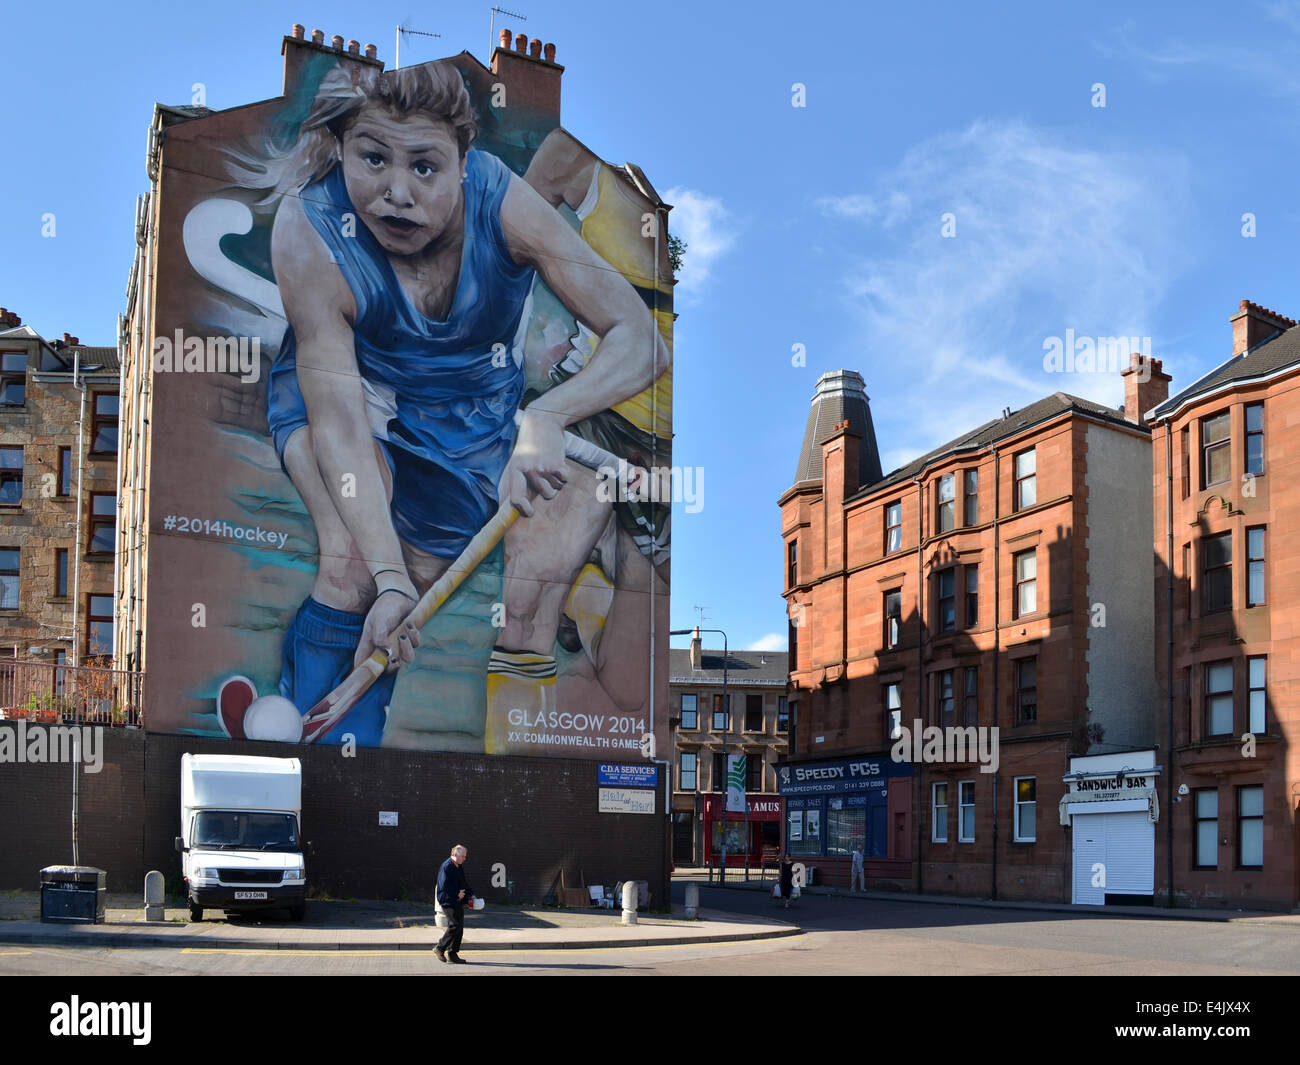 Glasgow Commonwealth Games 2014 graffiti on the gable ends at Partick Bus Station, Glasgow - Stock Image